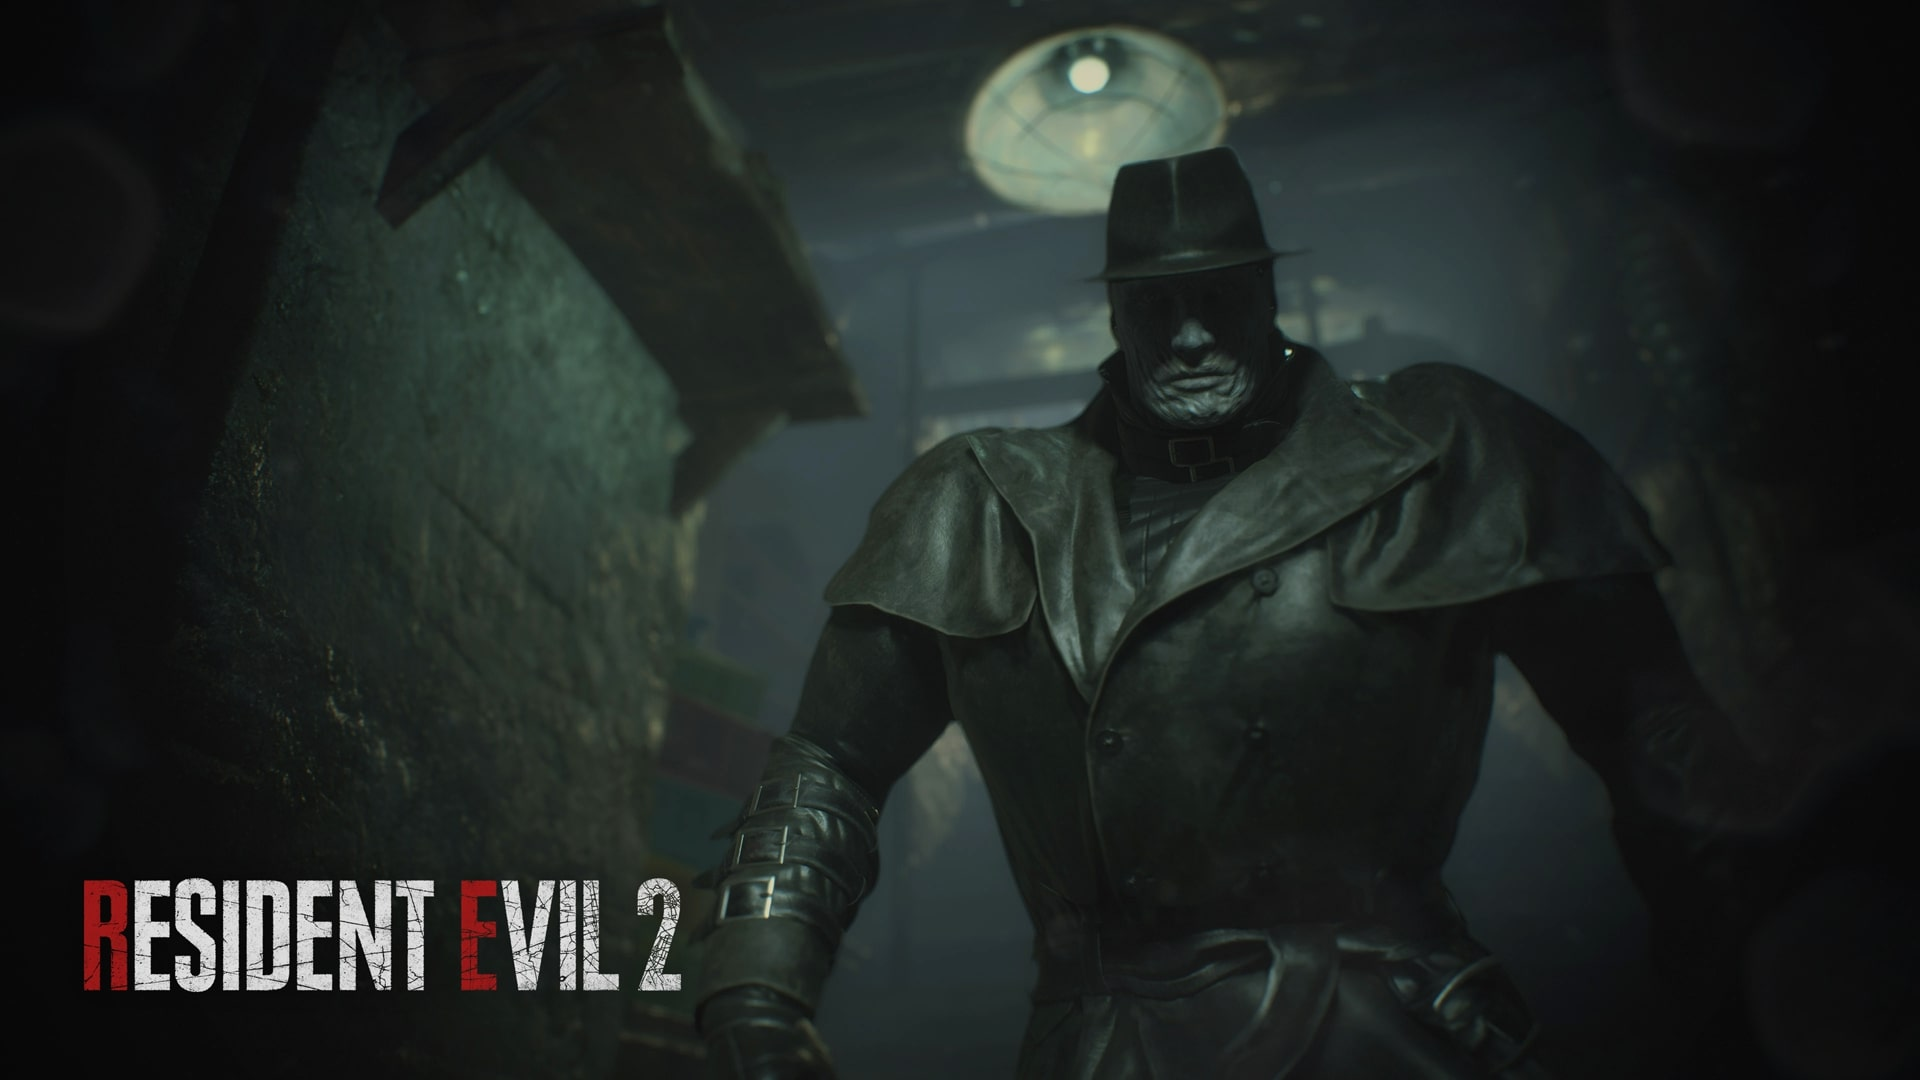 Steal his look: How to dress like Resident Evil 2's biggest